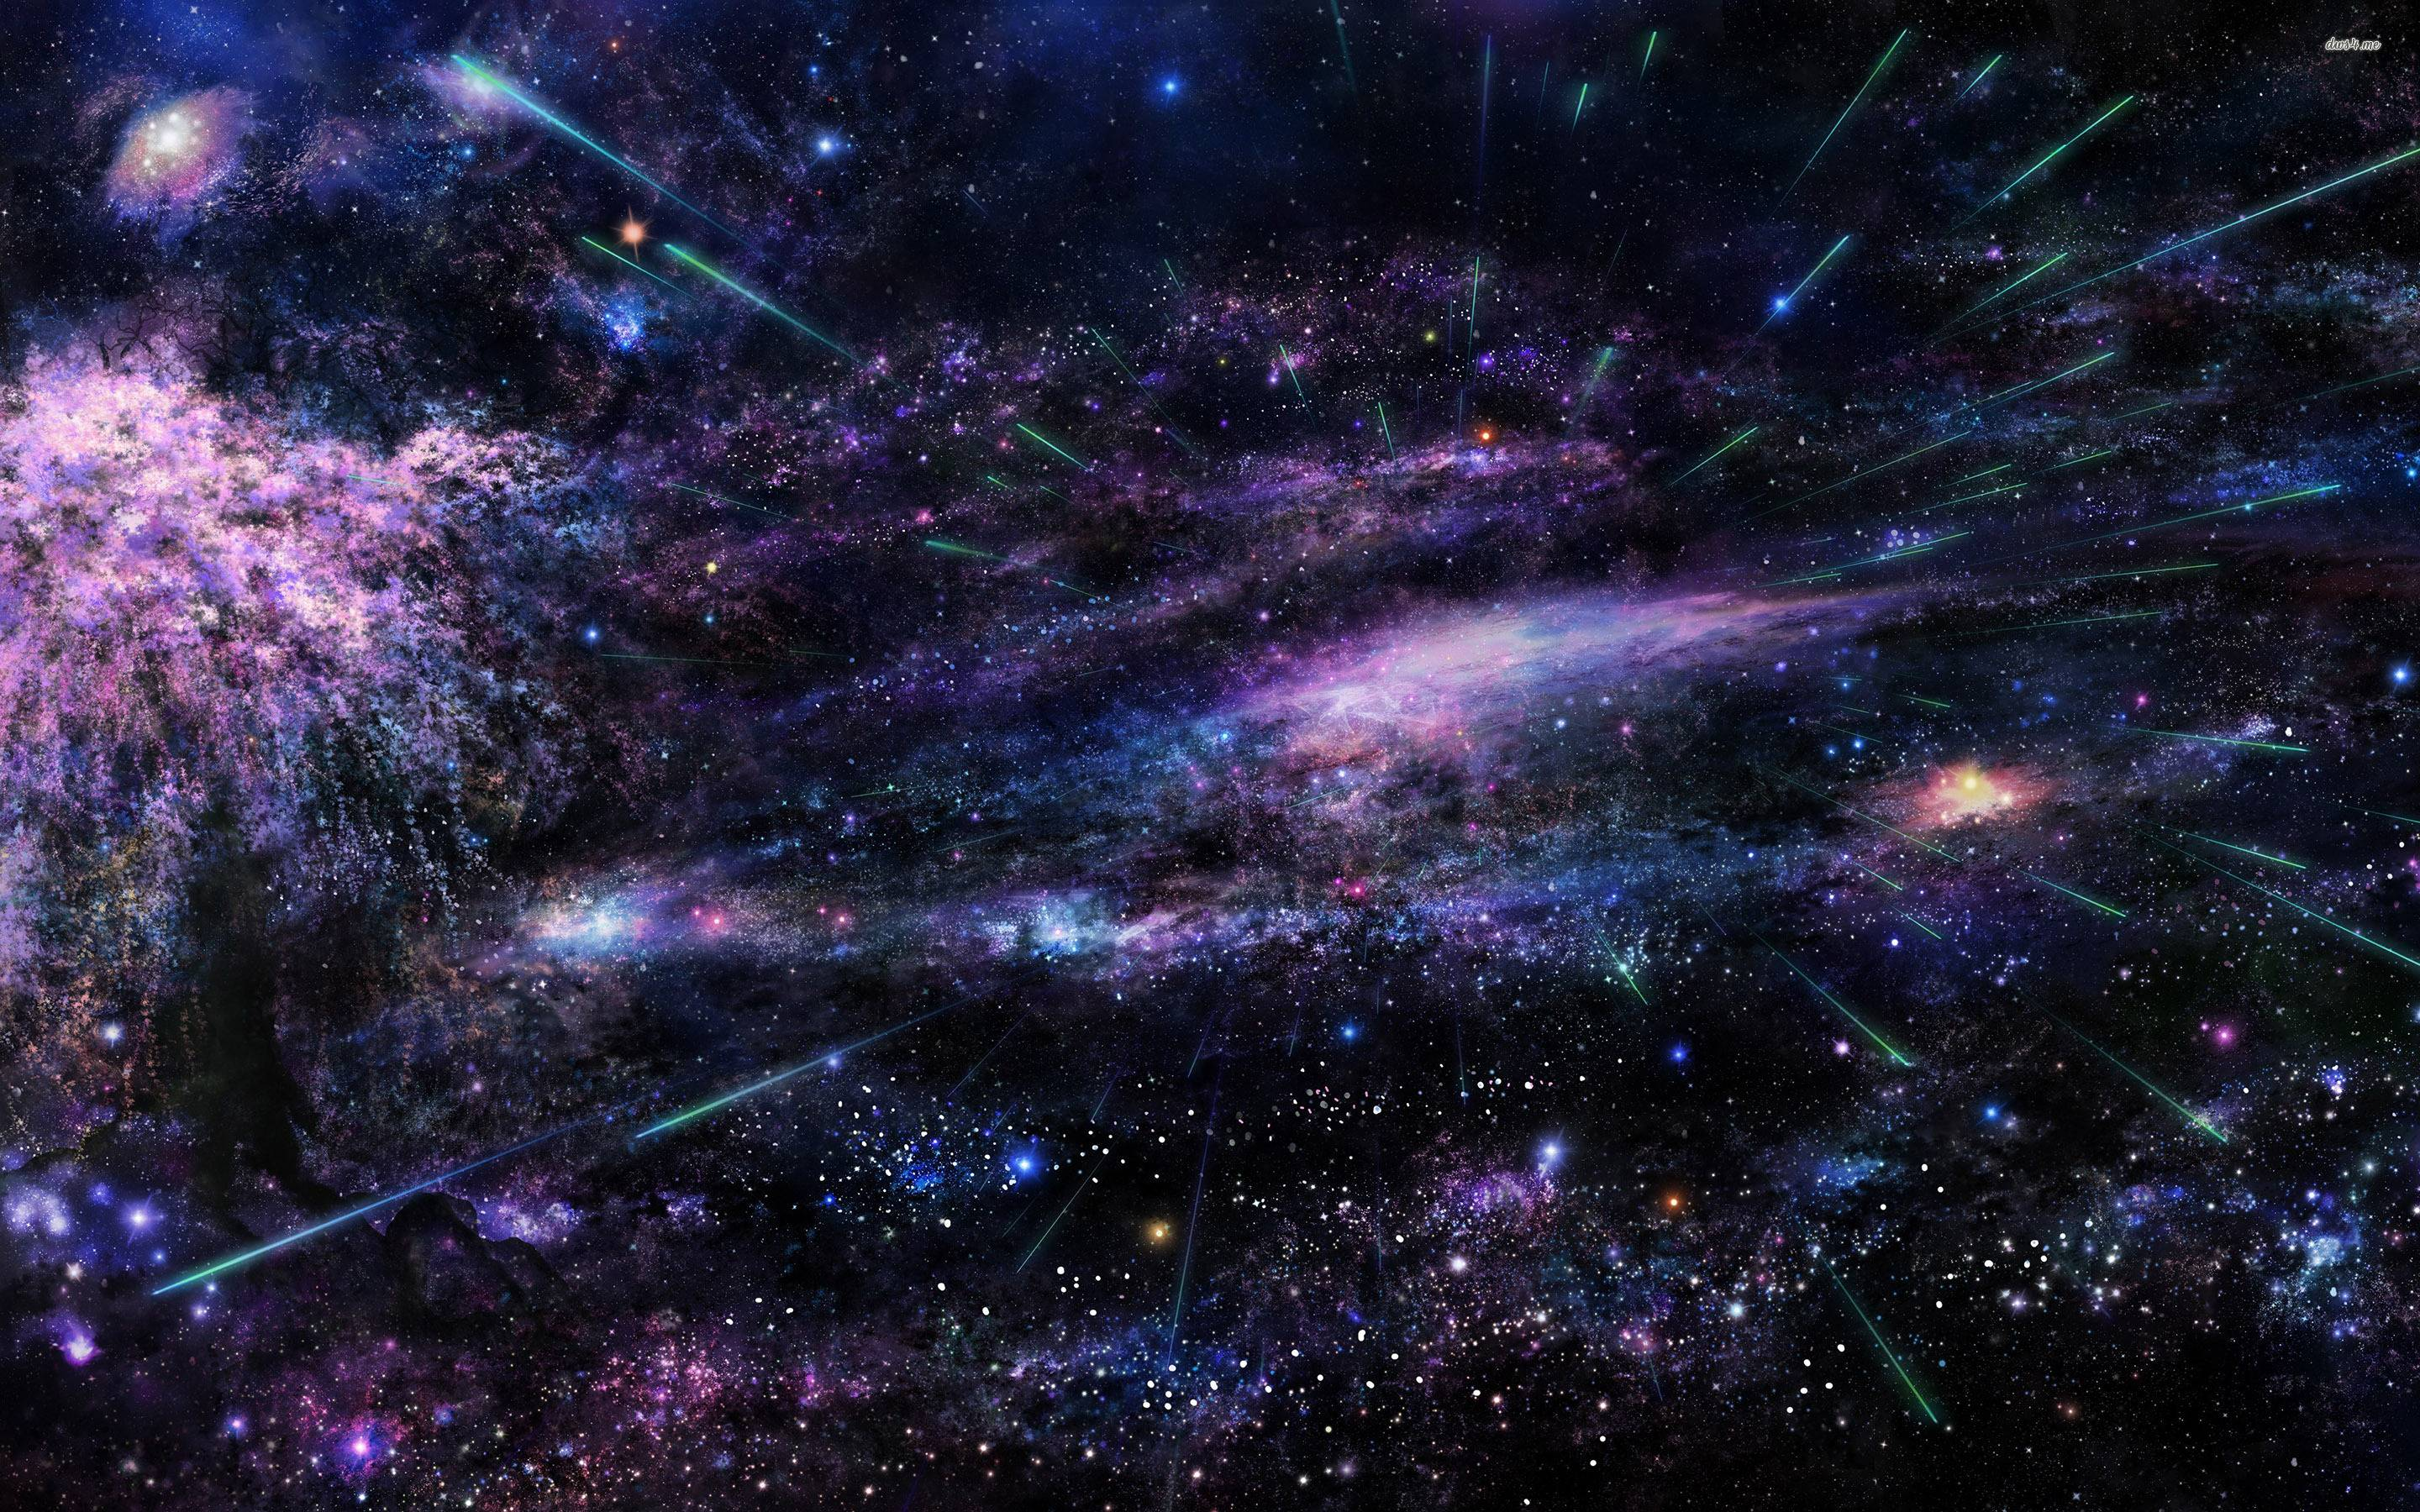 universe wallpapers - wallpaper cave